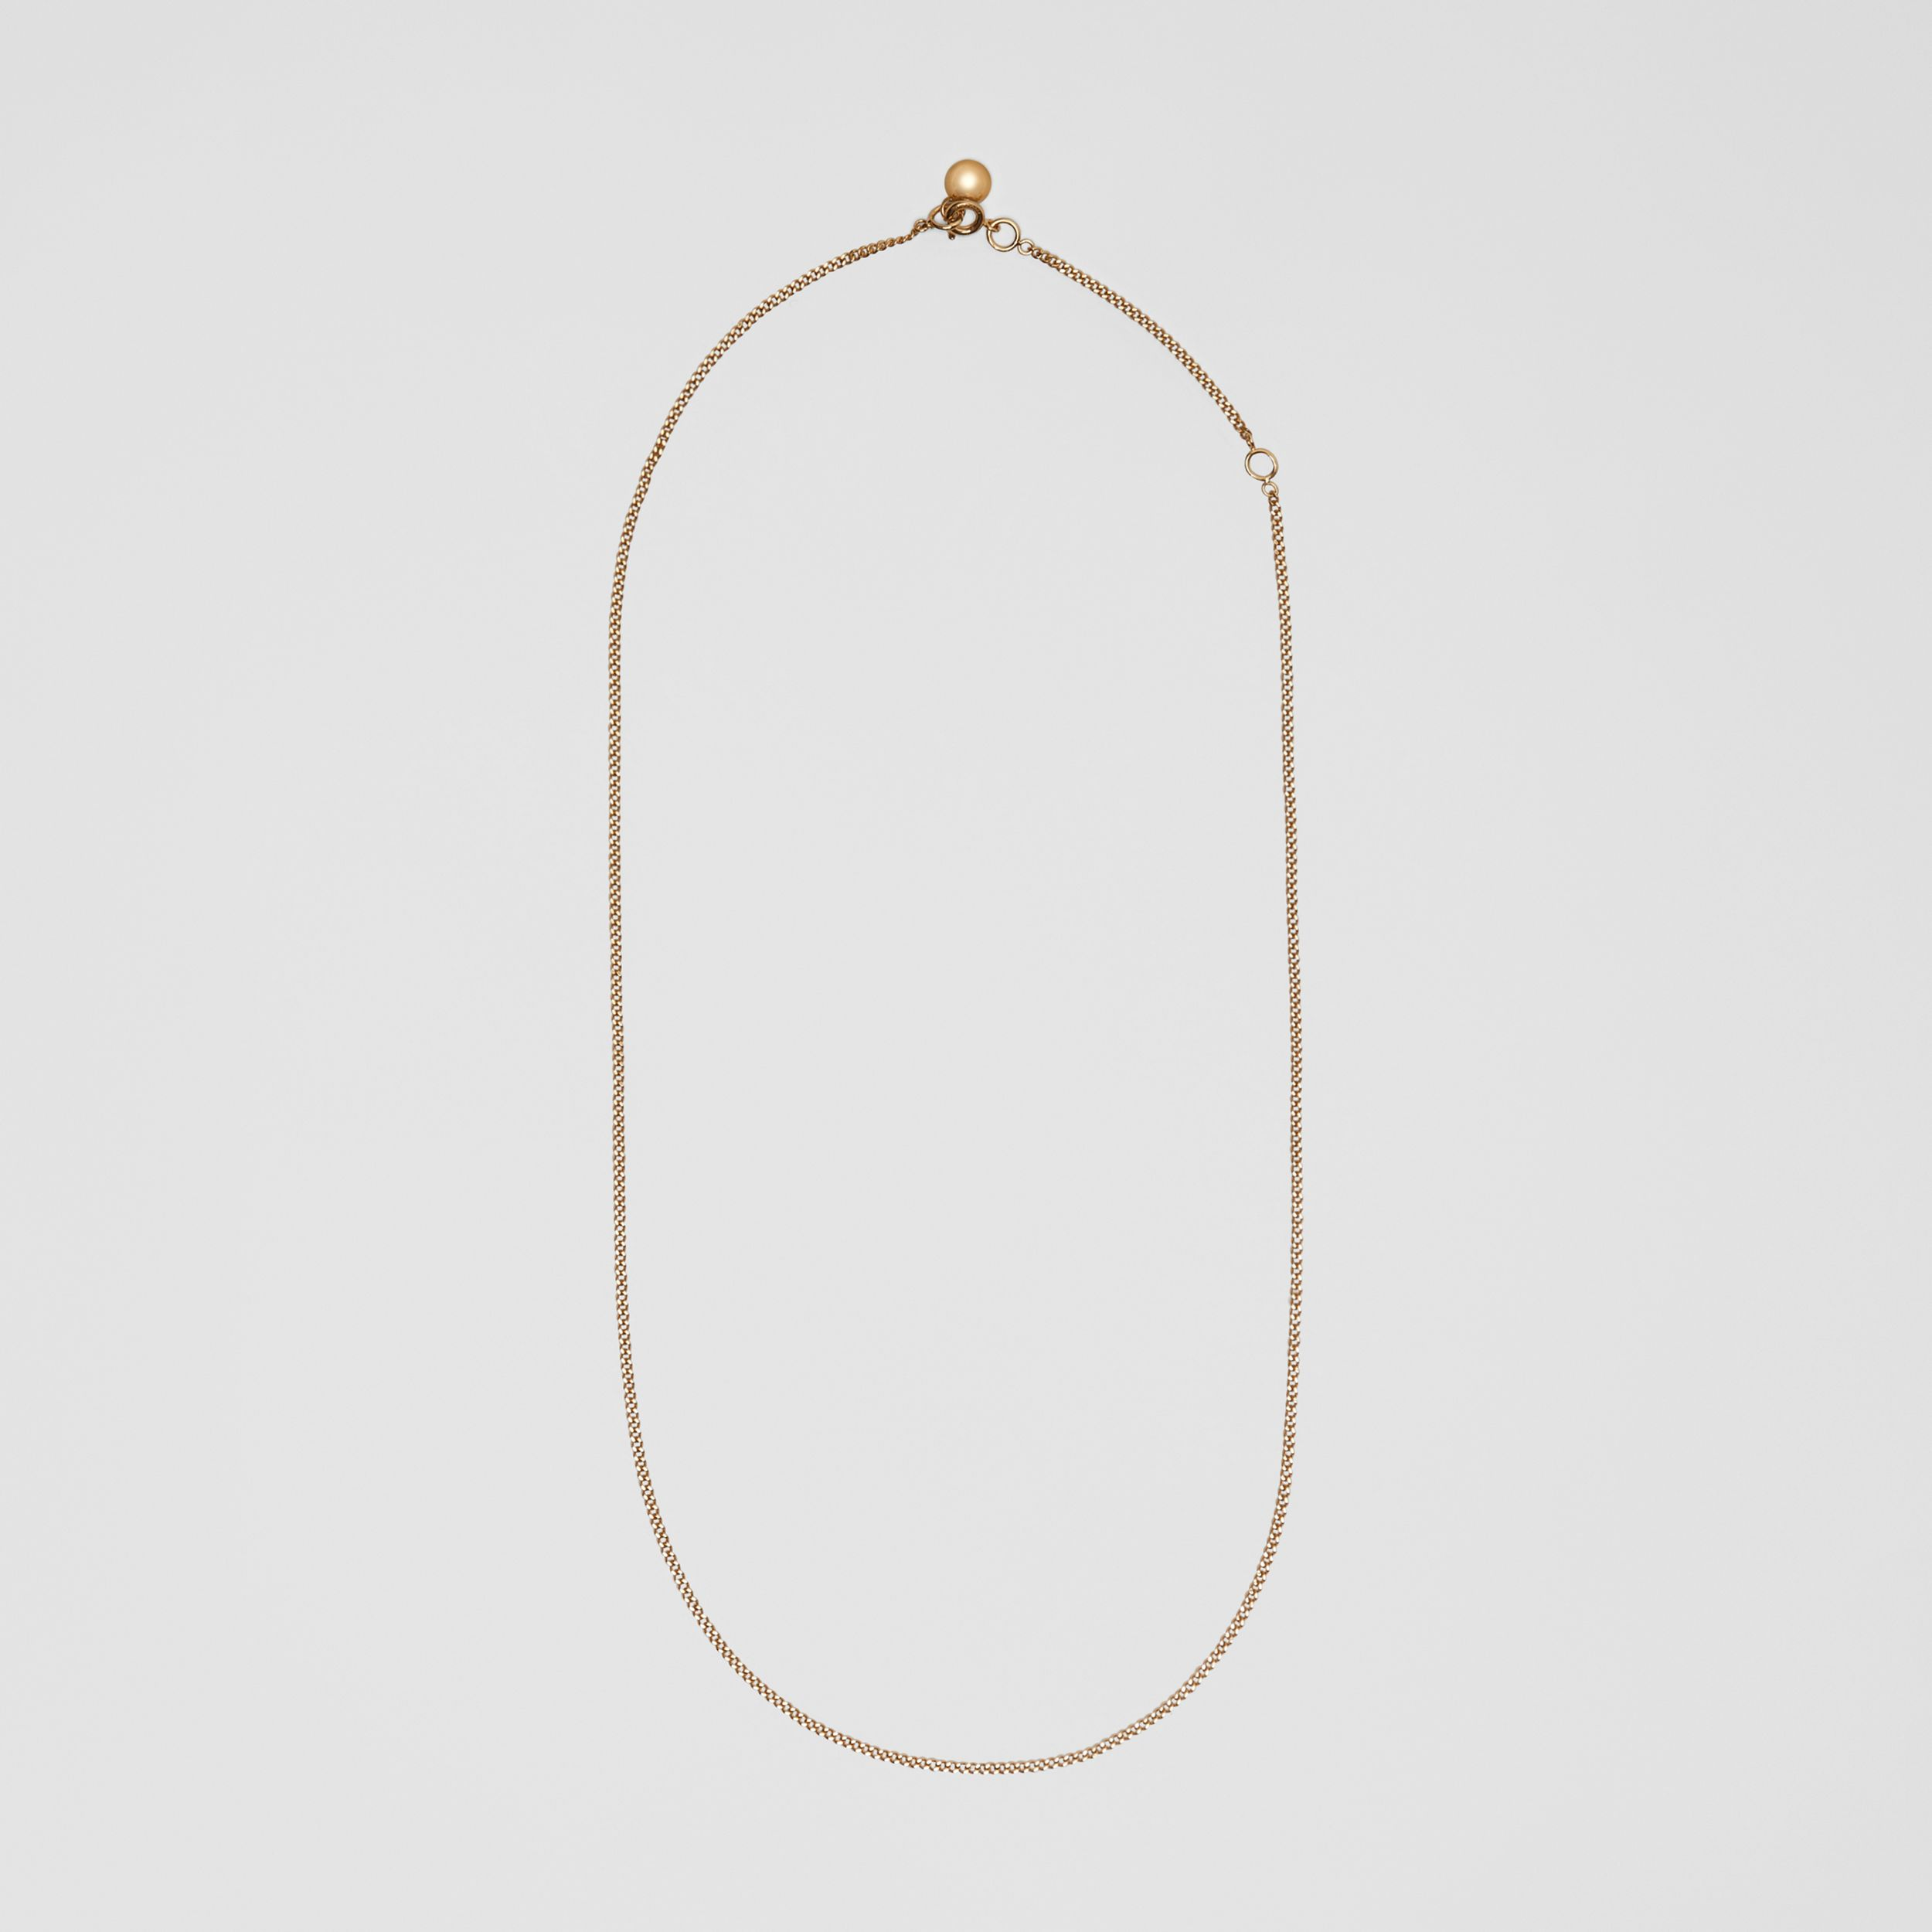 Gold-plated Chain Necklace in Light - Women | Burberry - 1